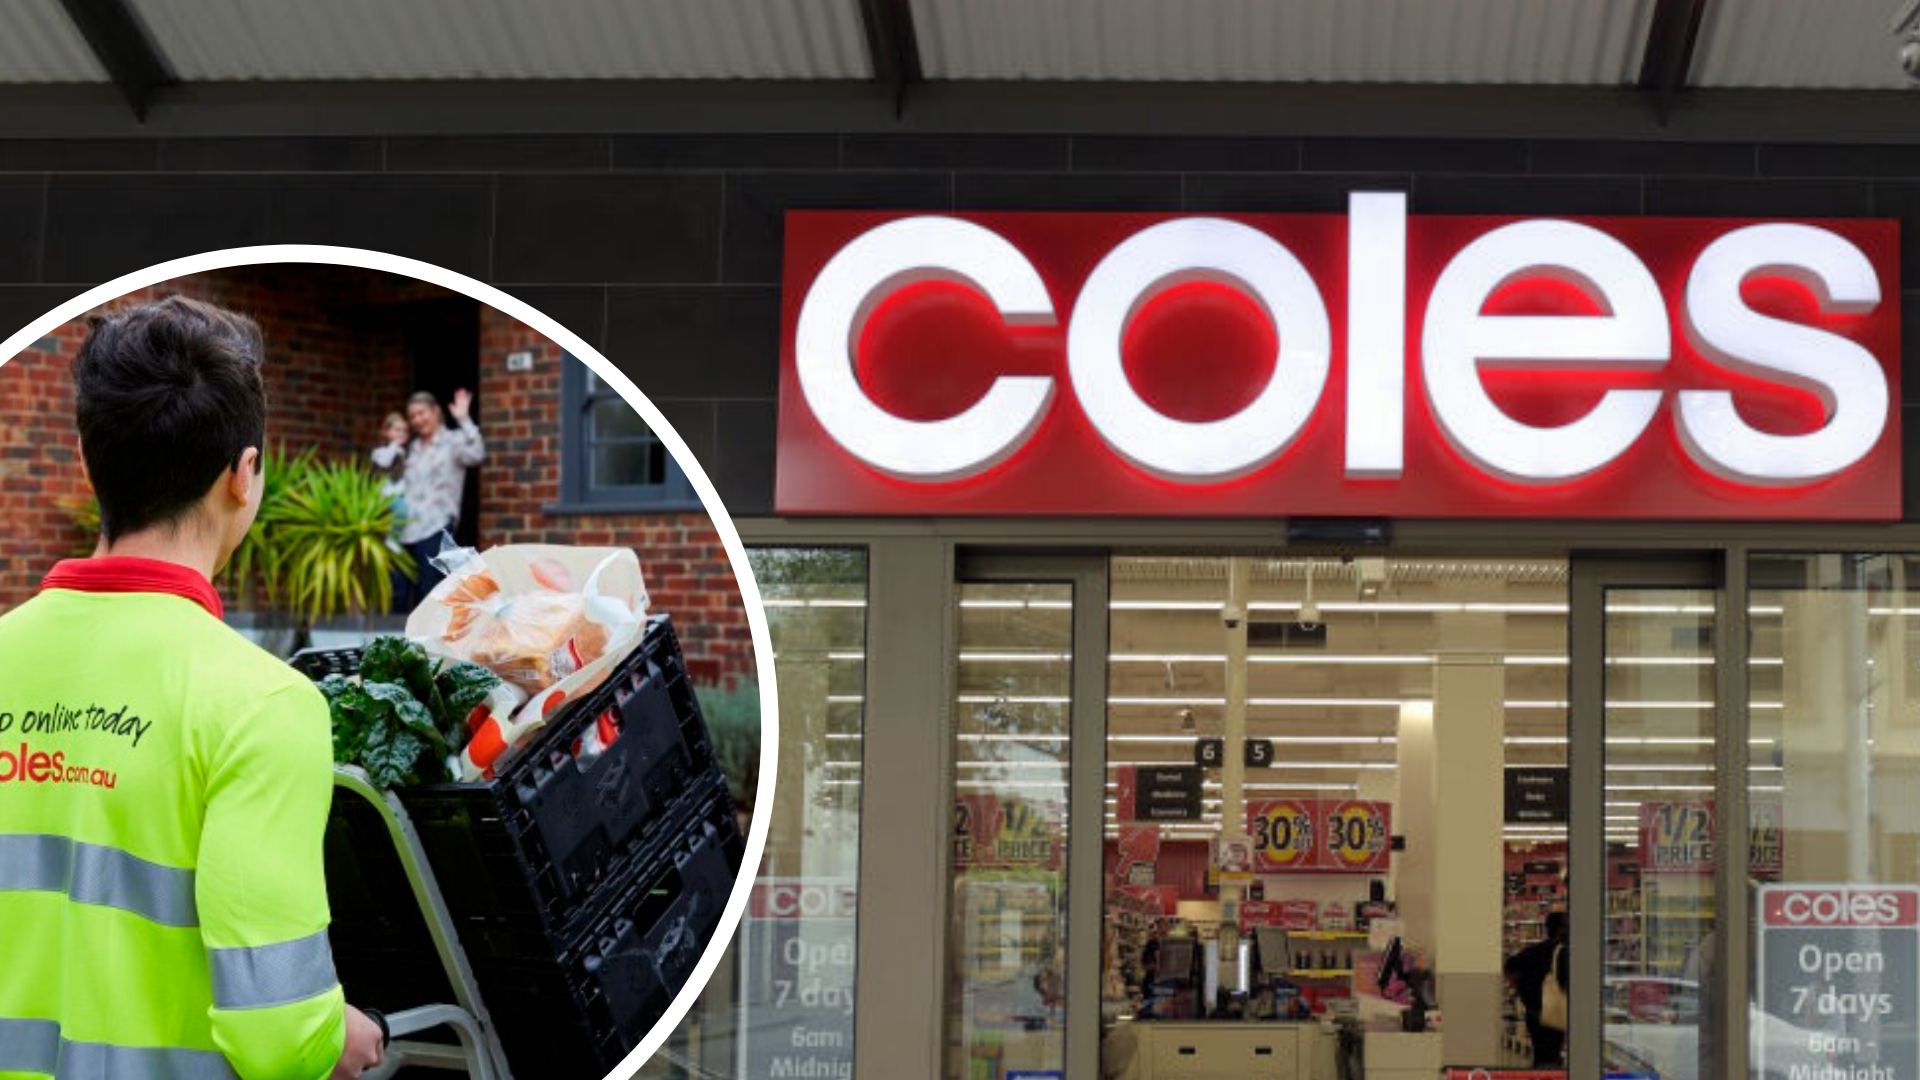 Coles Strikes Back At Amazon With Delivery Service